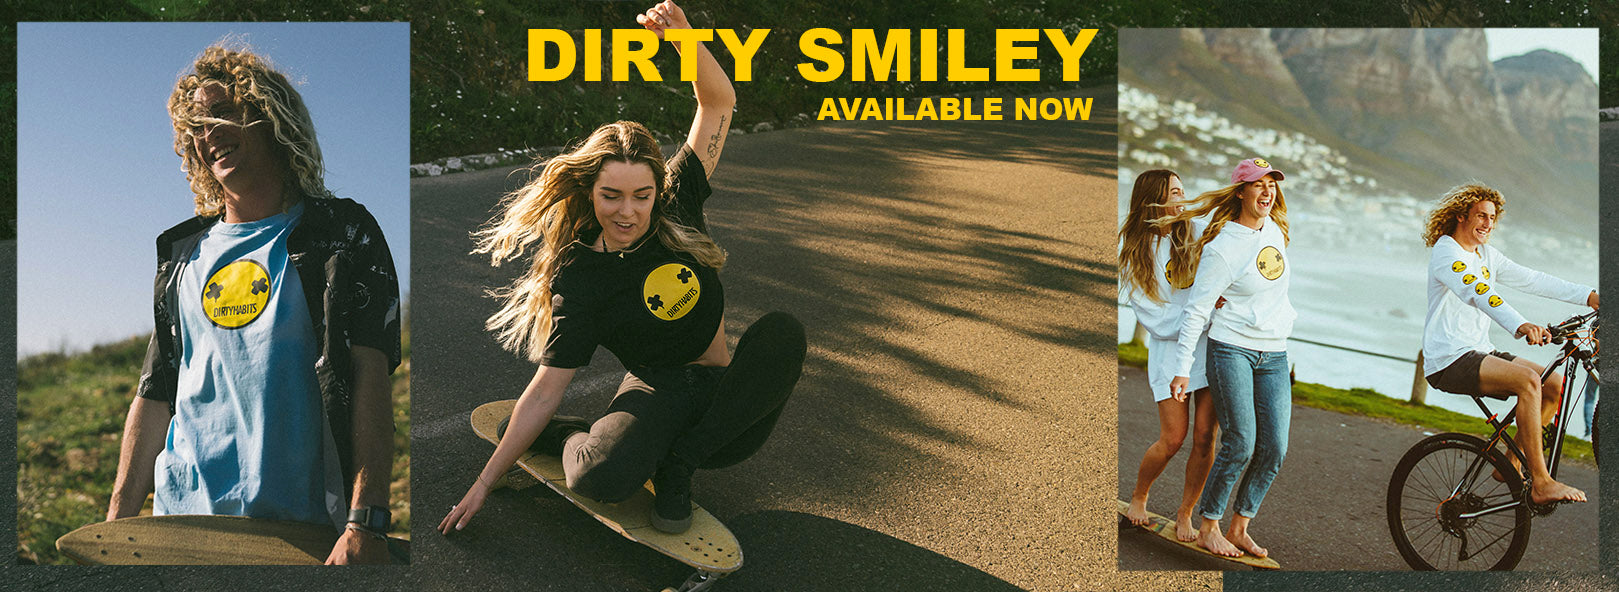 Dirty Habits Smiley clothing